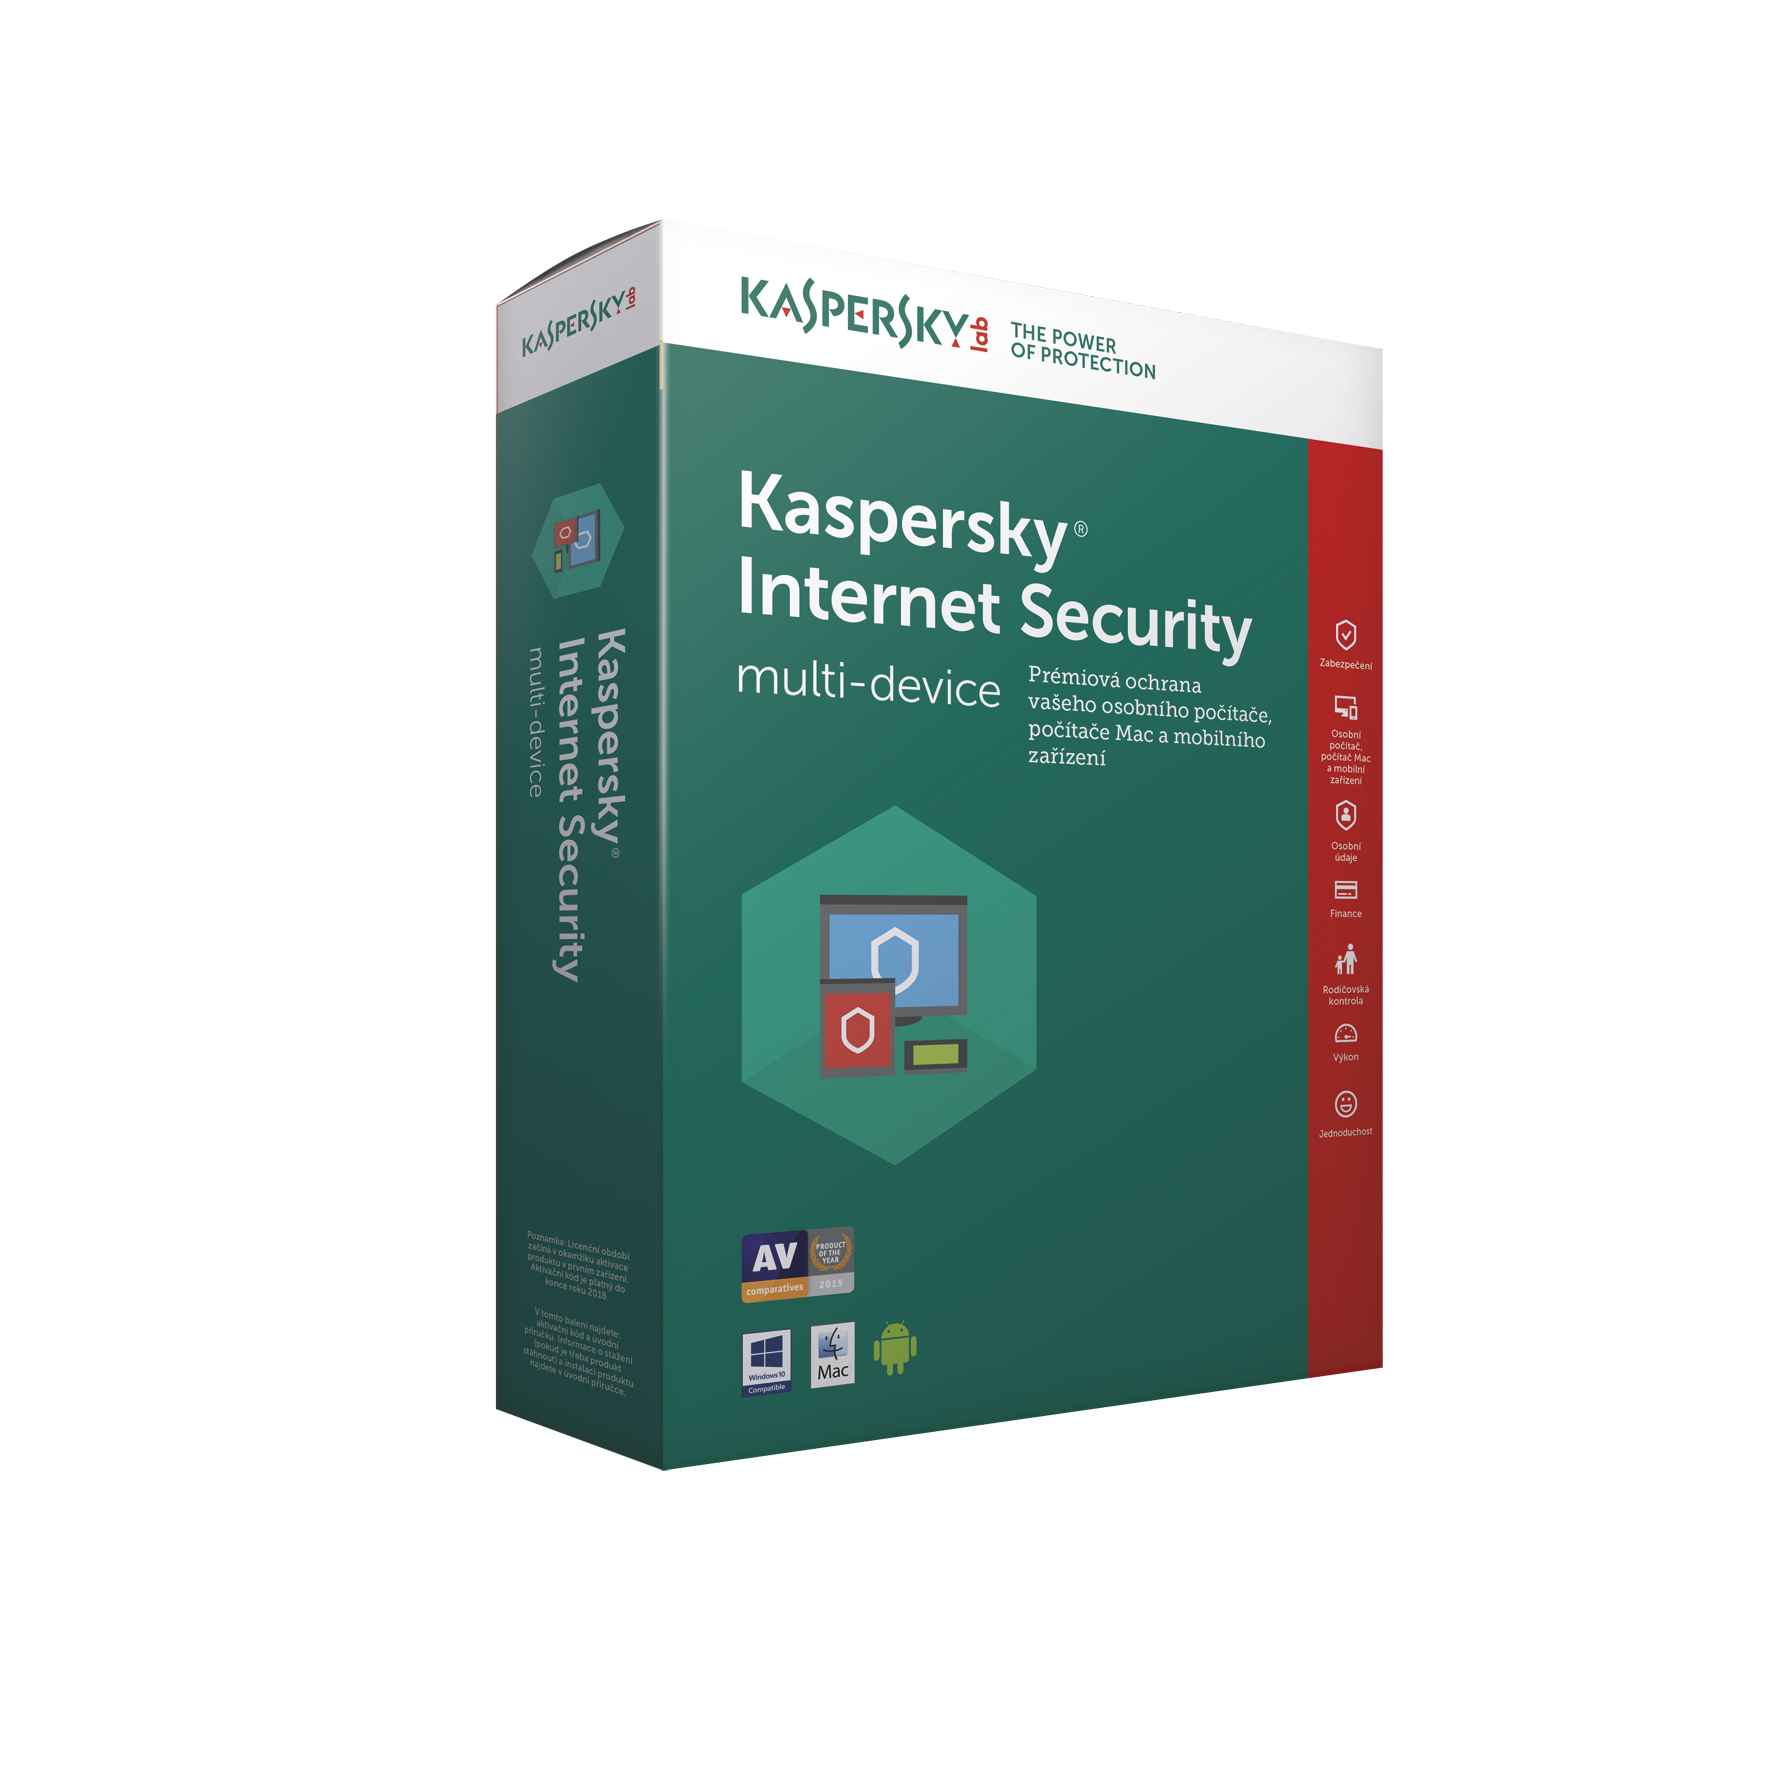 Kaspersky Internet Security MD 2019 CZ, 4x, 1 rok